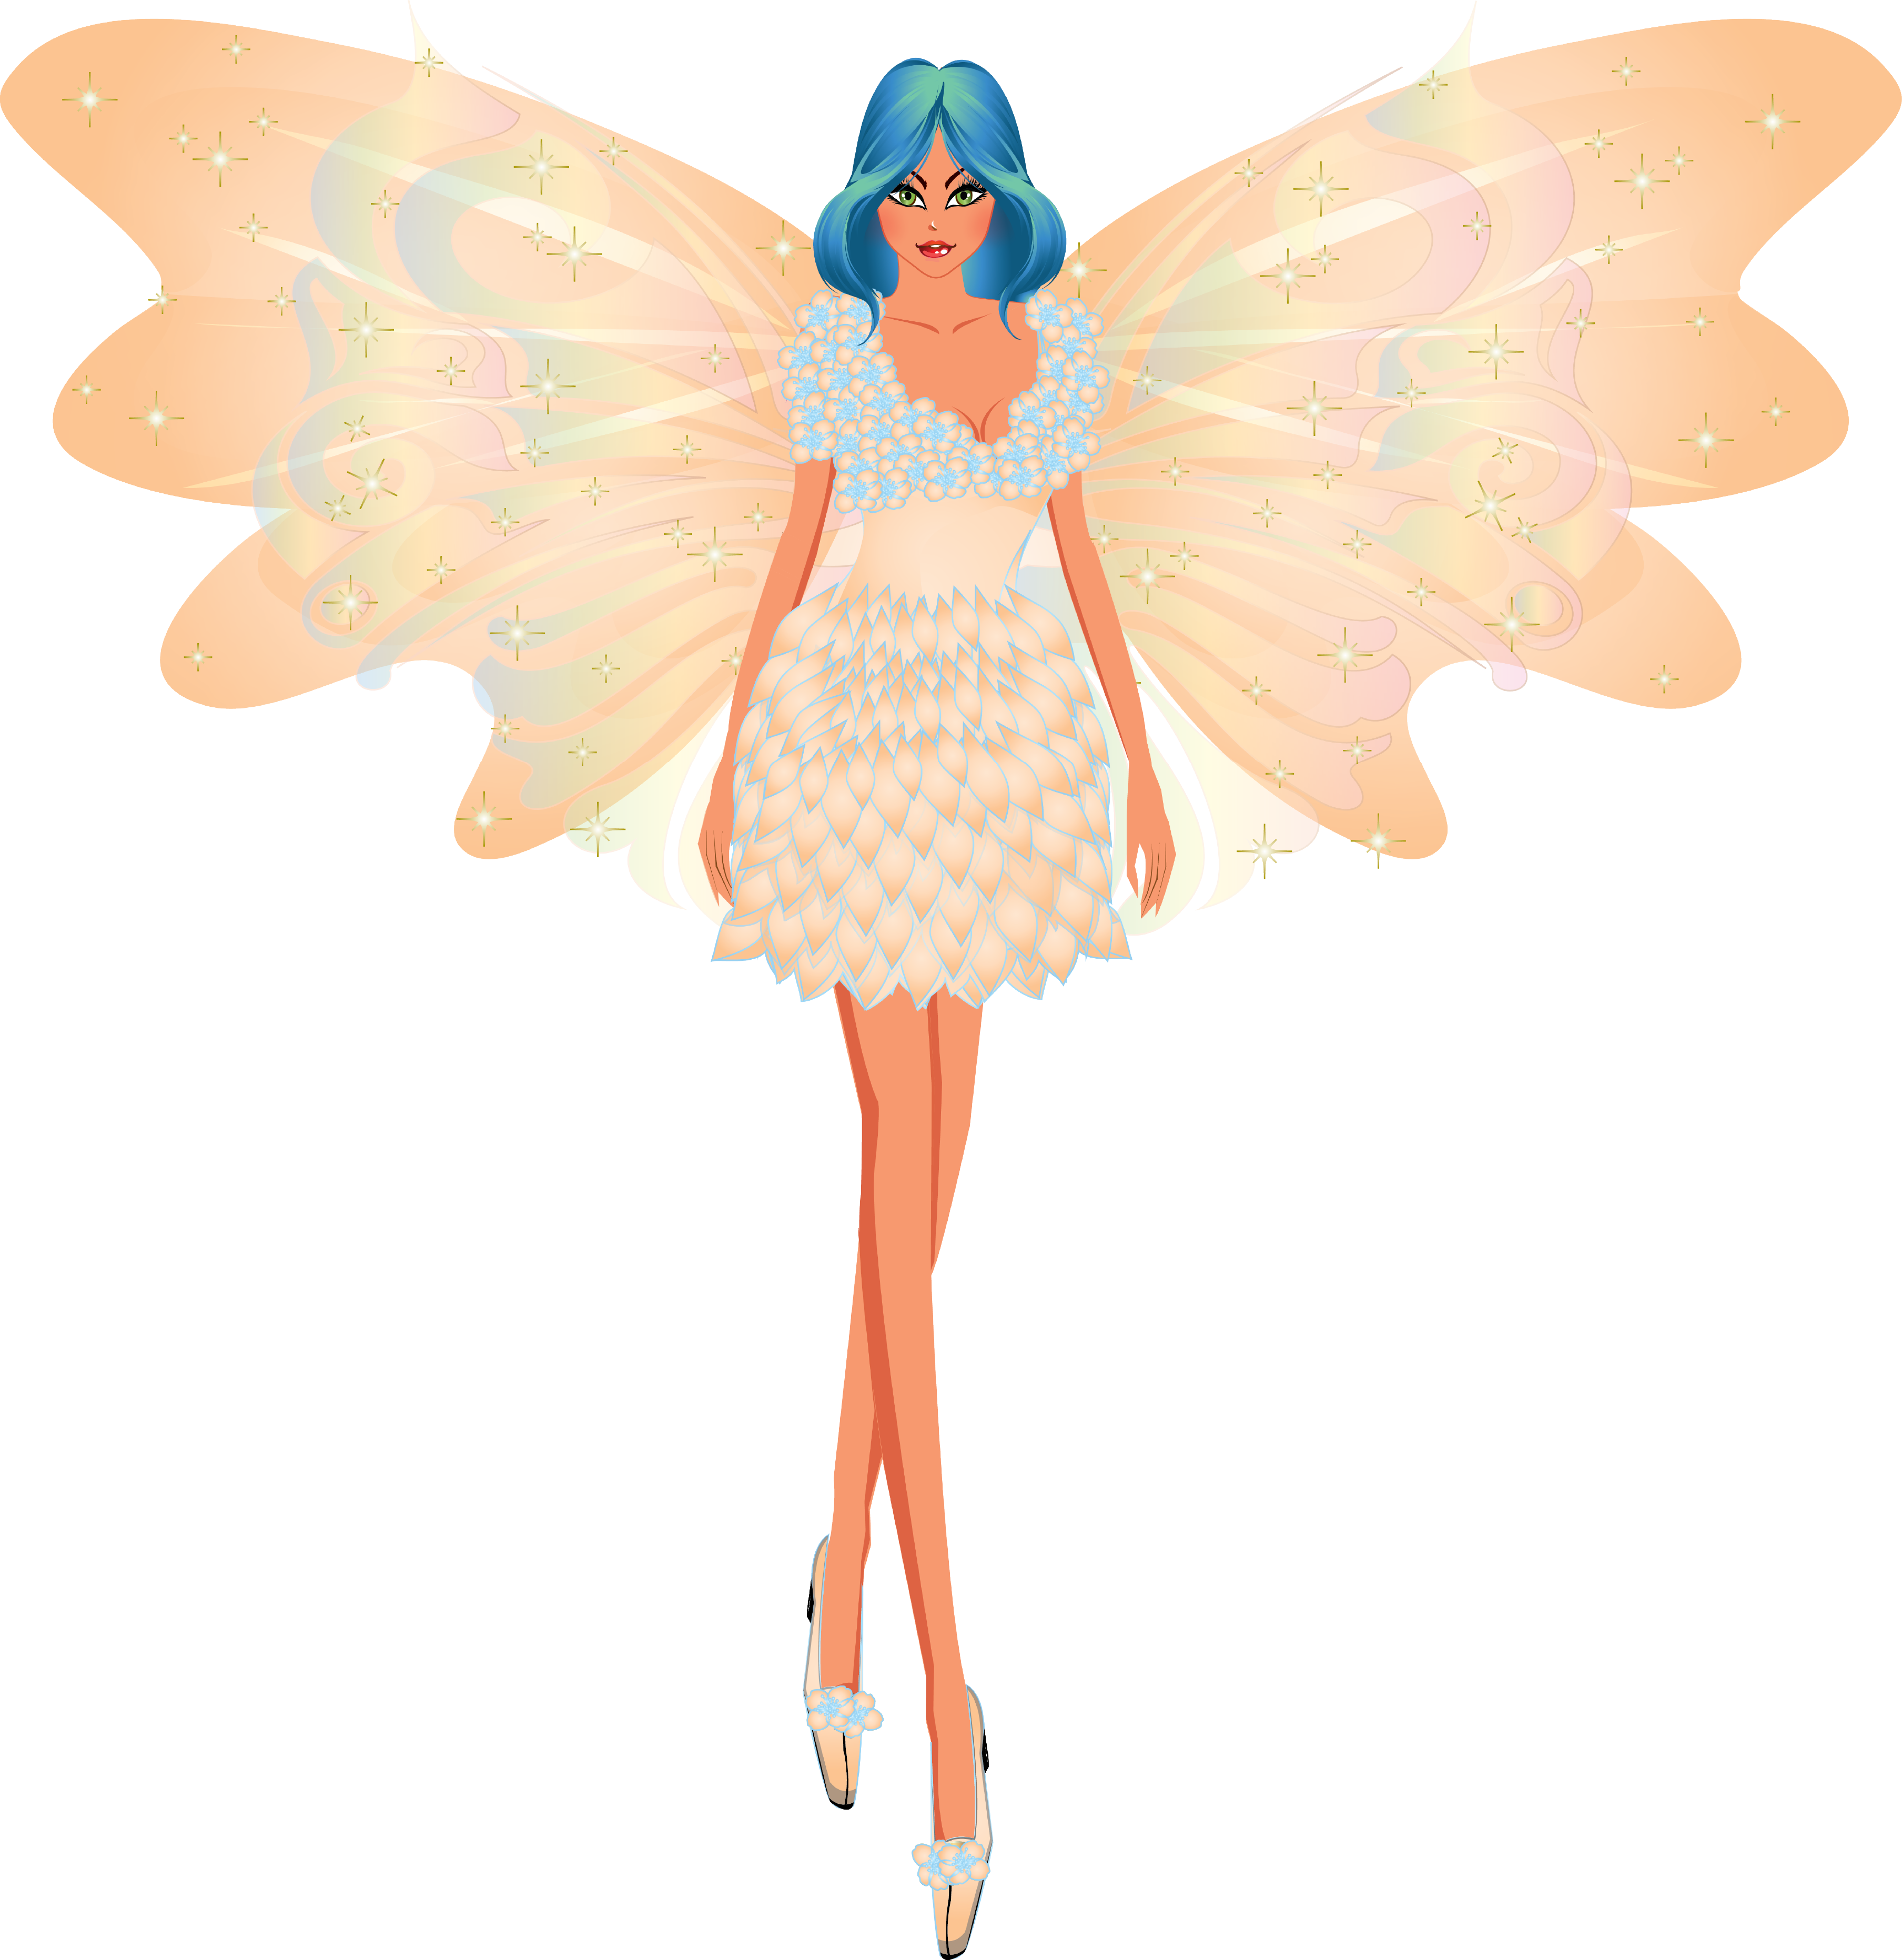 Faerie drawing pen. Fairy clipart and digital